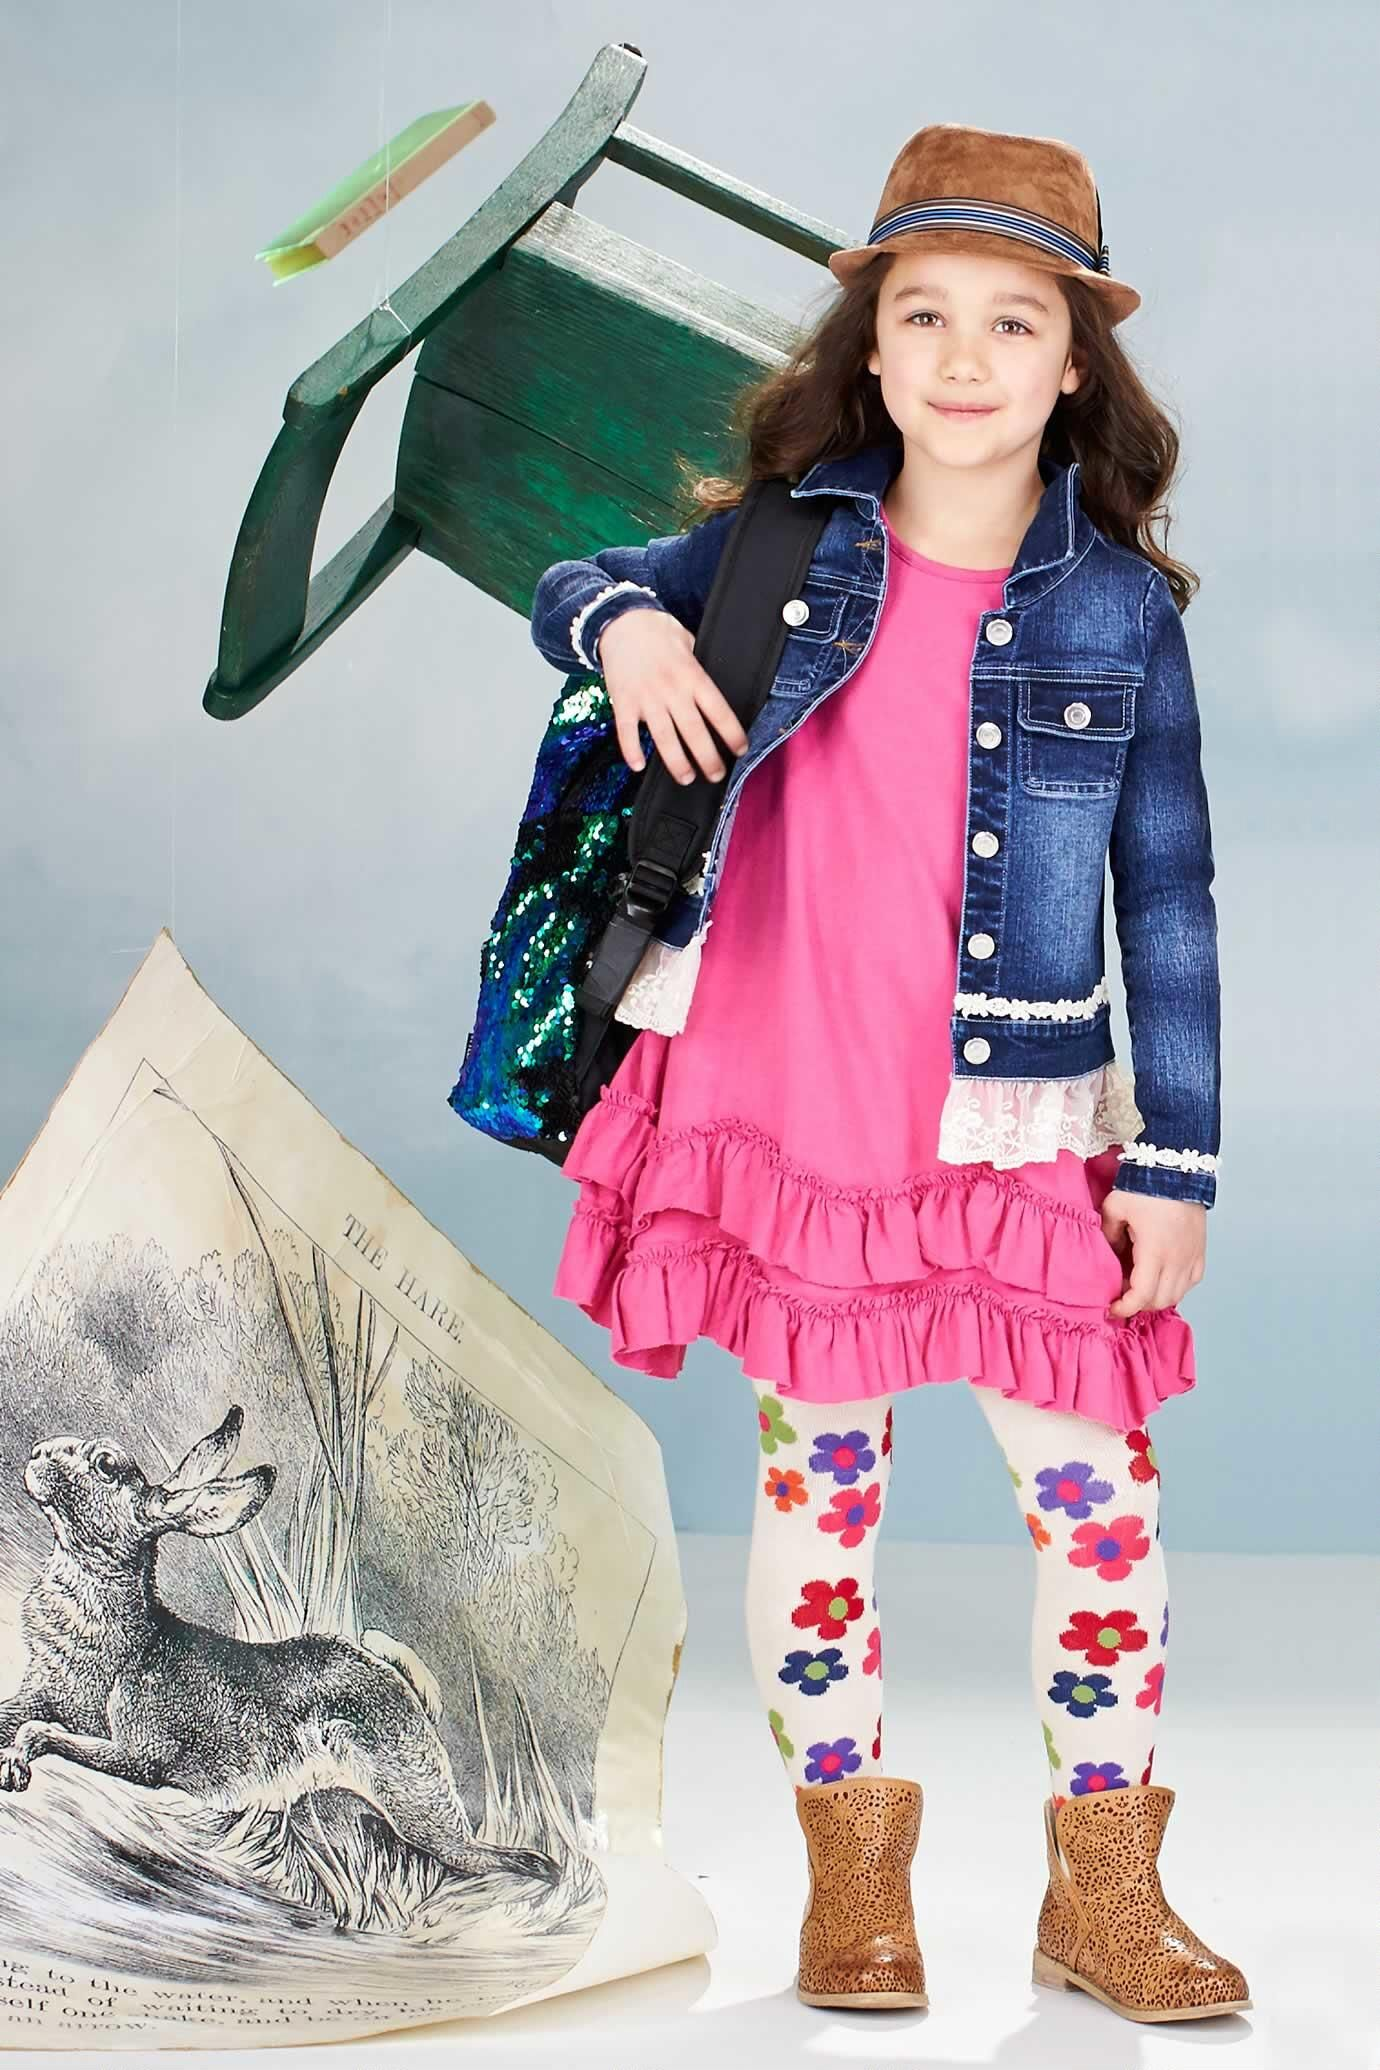 73c210d0e434 Add some fun to this pink scalloped ruffle dress with colorful leggings & a  jean jacket. Cute back to school outfit for your little girl!